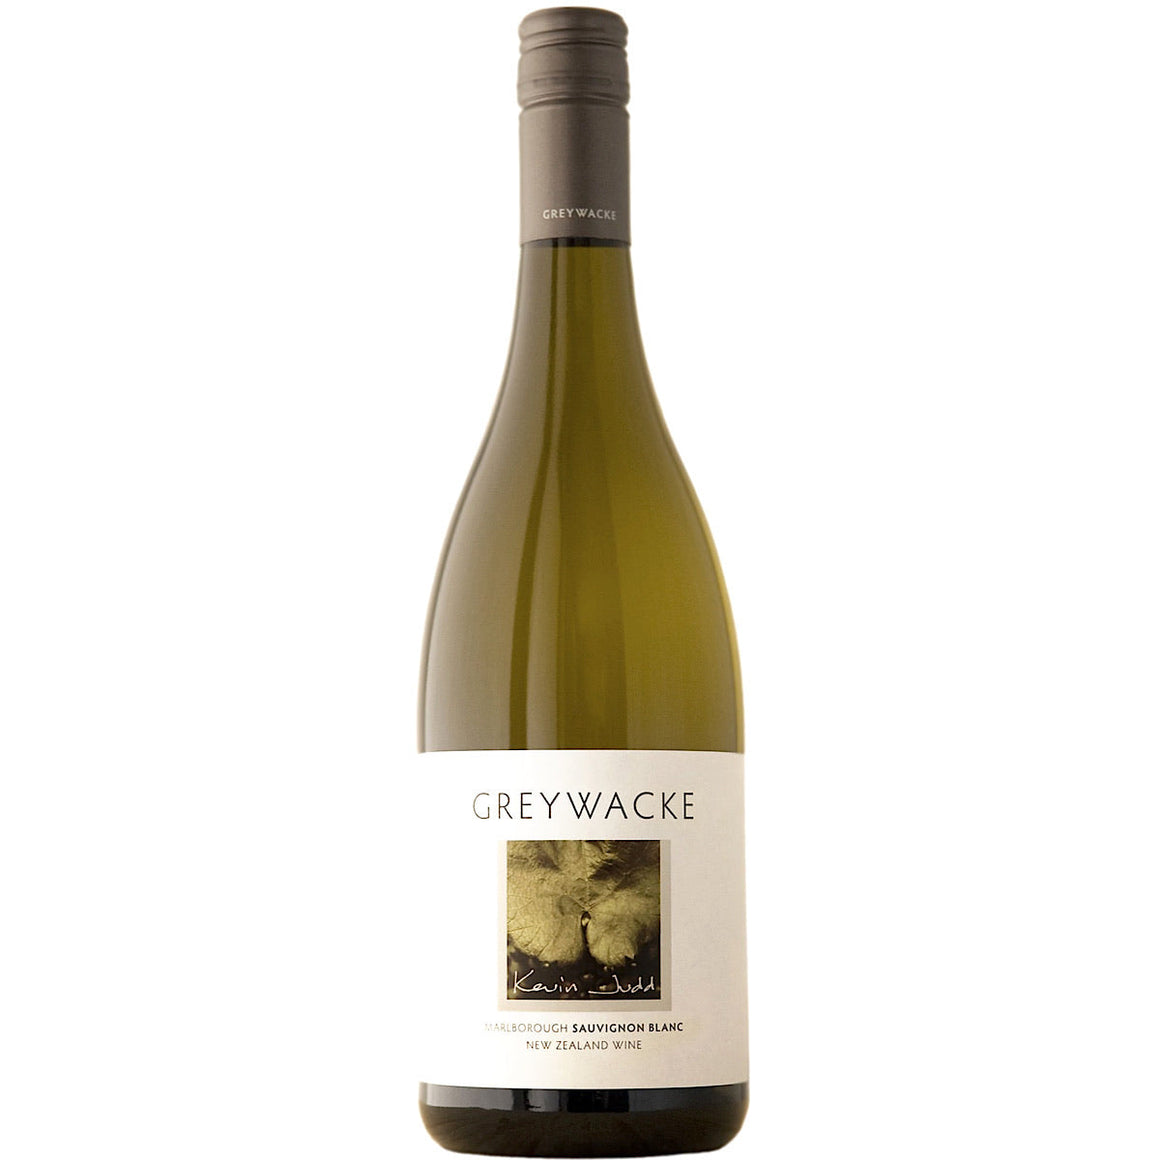 Greywacke Marlborough Sauvignon Blanc 75cl